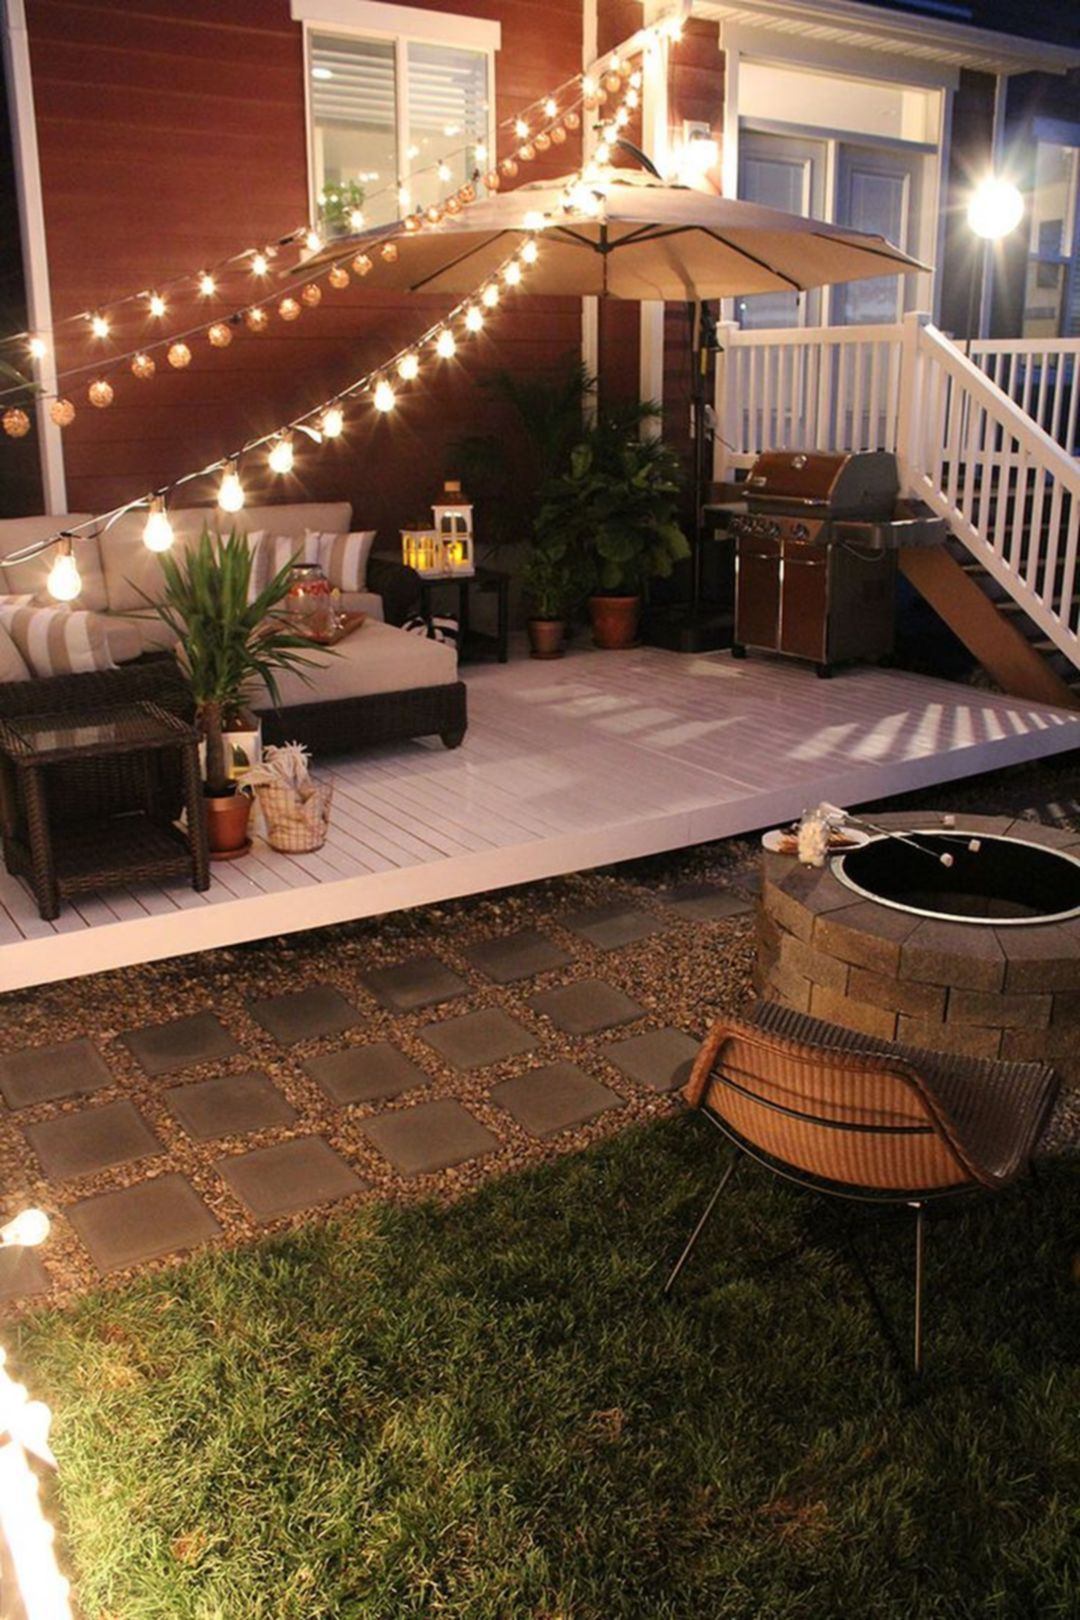 Top 20 Wonderful Deck Decorating Ideas On a Budget ... on Backyard Patios On A Budget id=96175